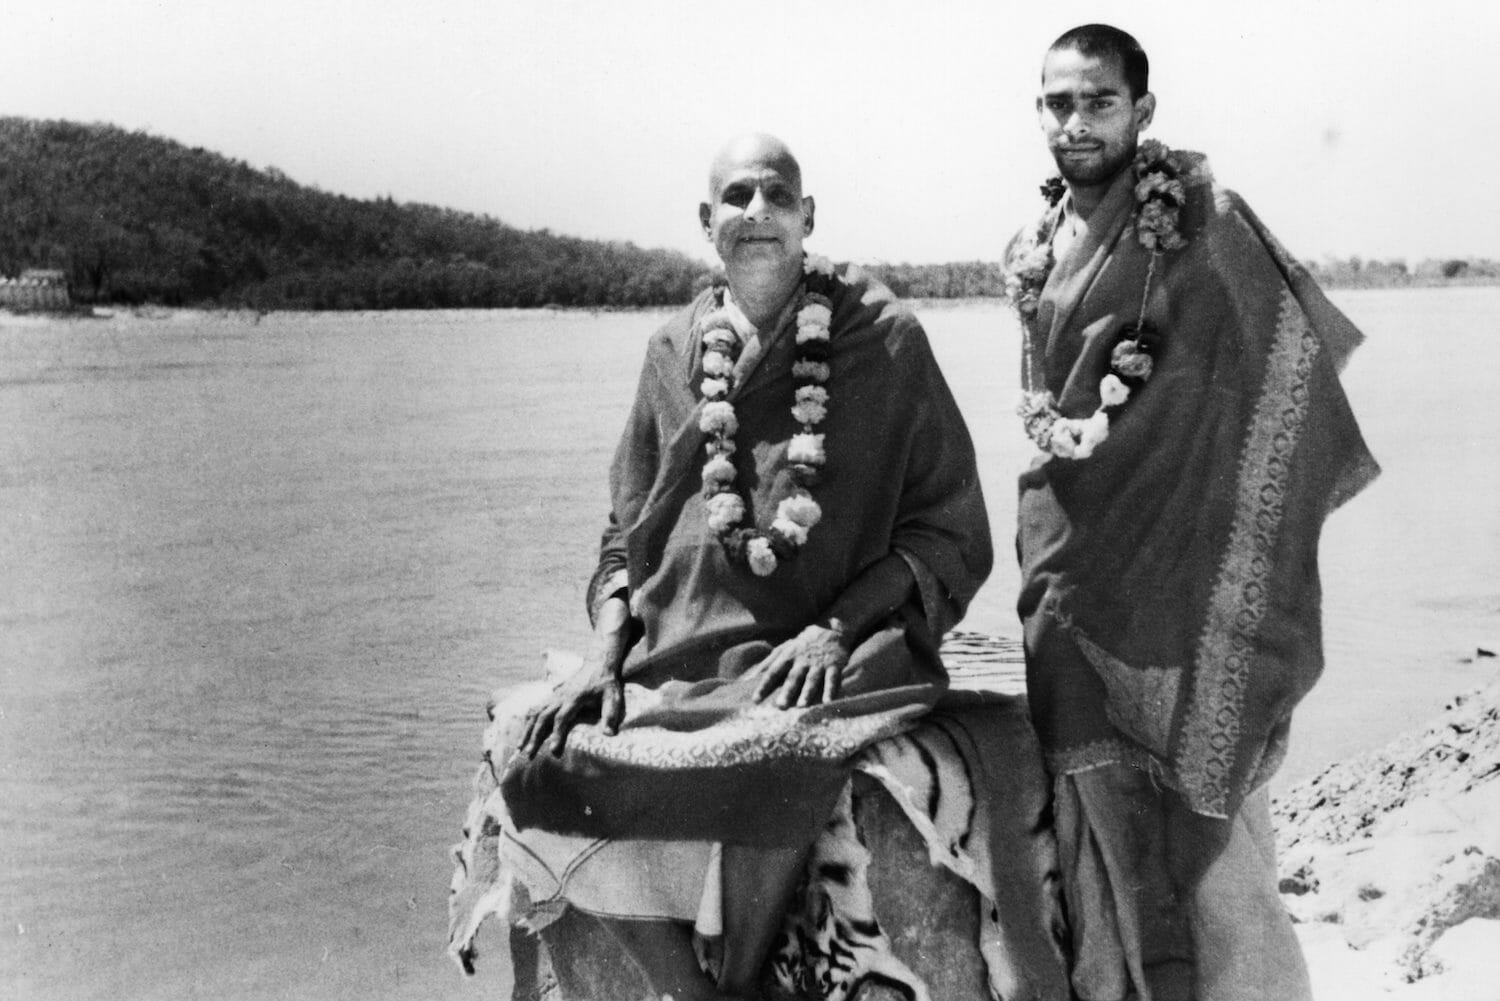 Guru Purnima: Celebrating the Guru's Life & Teachings at the Sivananda Yoga Ranch